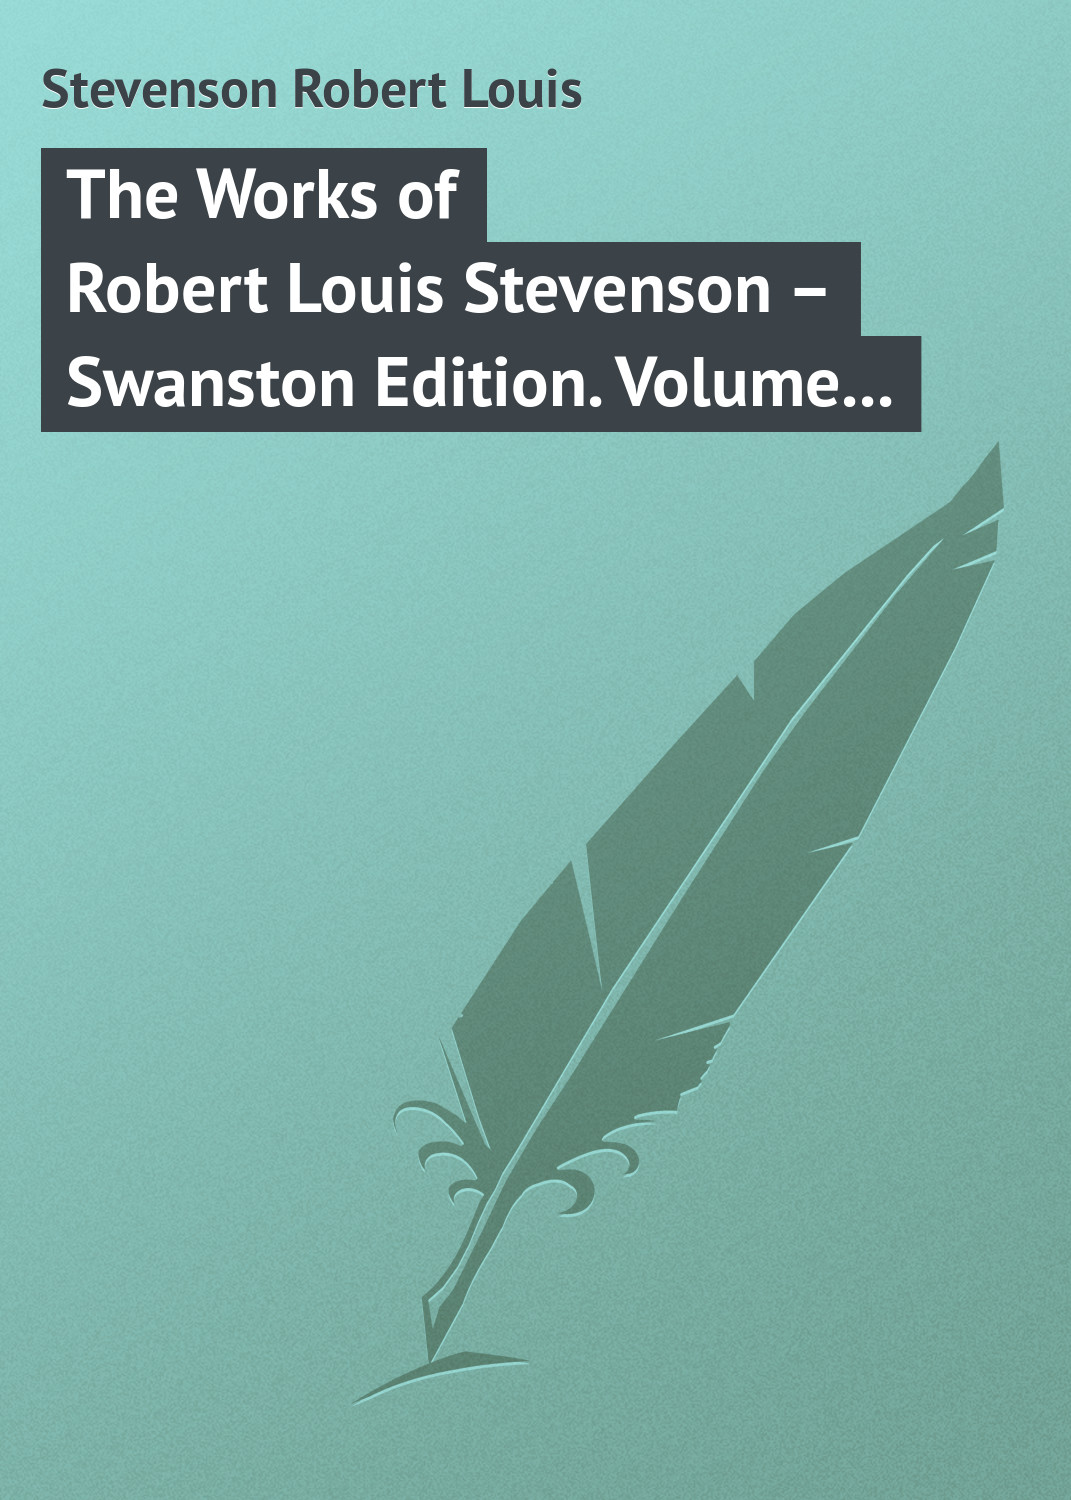 цена на Роберт Льюис Стивенсон The Works of Robert Louis Stevenson – Swanston Edition. Volume 5